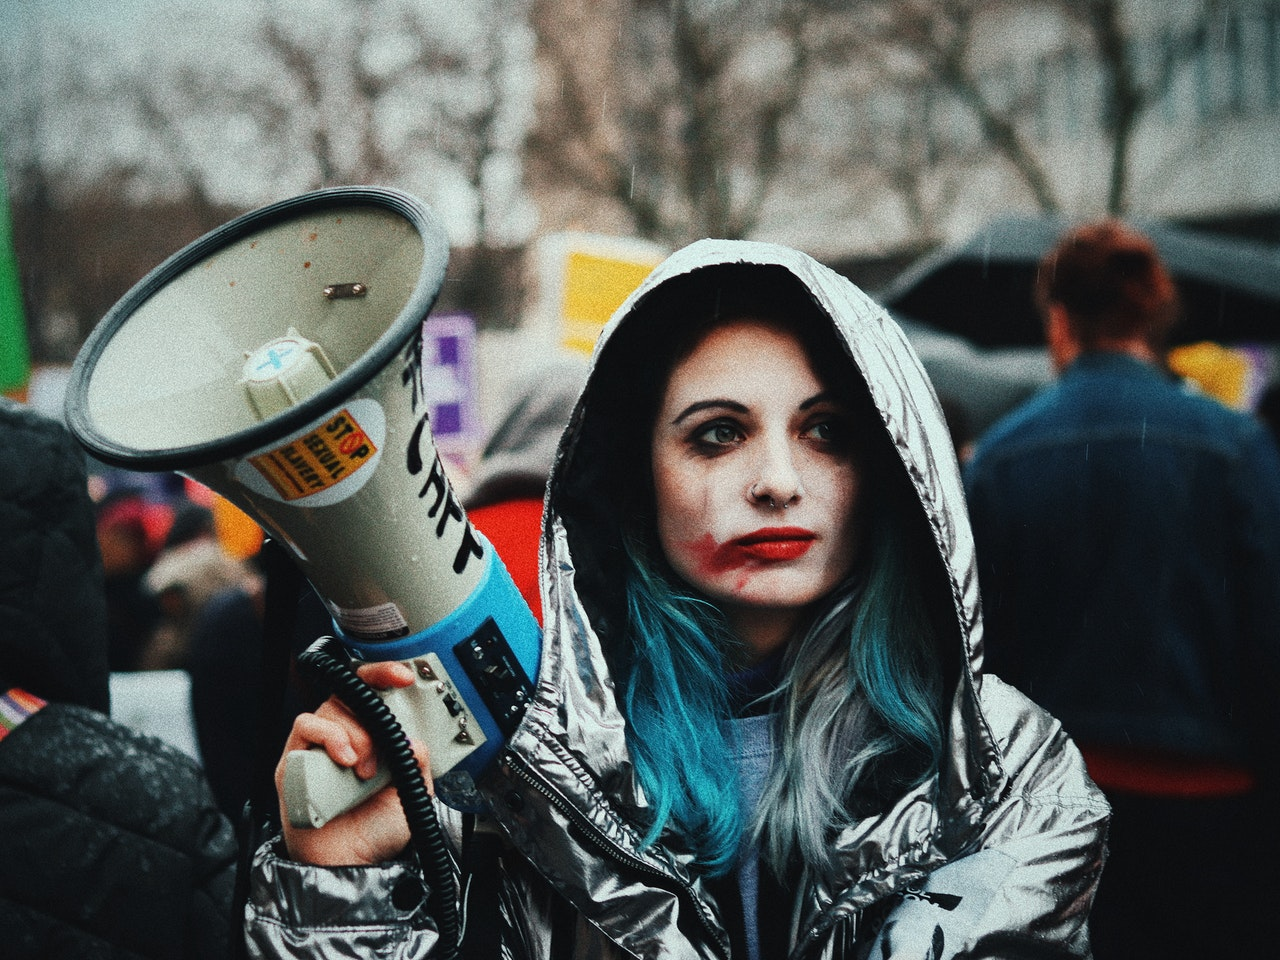 photojournalism at a protest